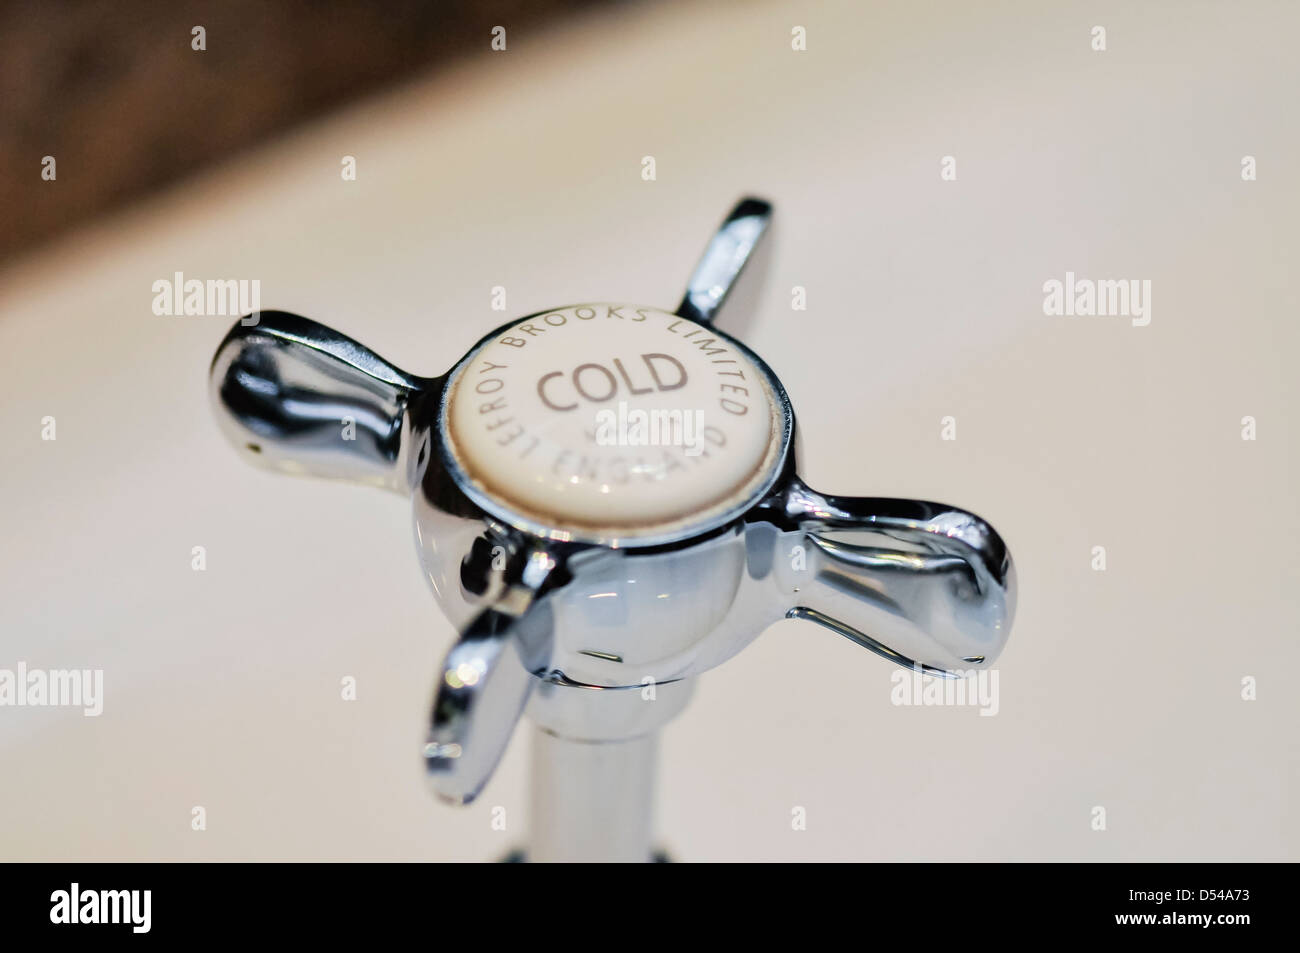 Lefroy Brooks La Chapelle cold tap fitting - Stock Image